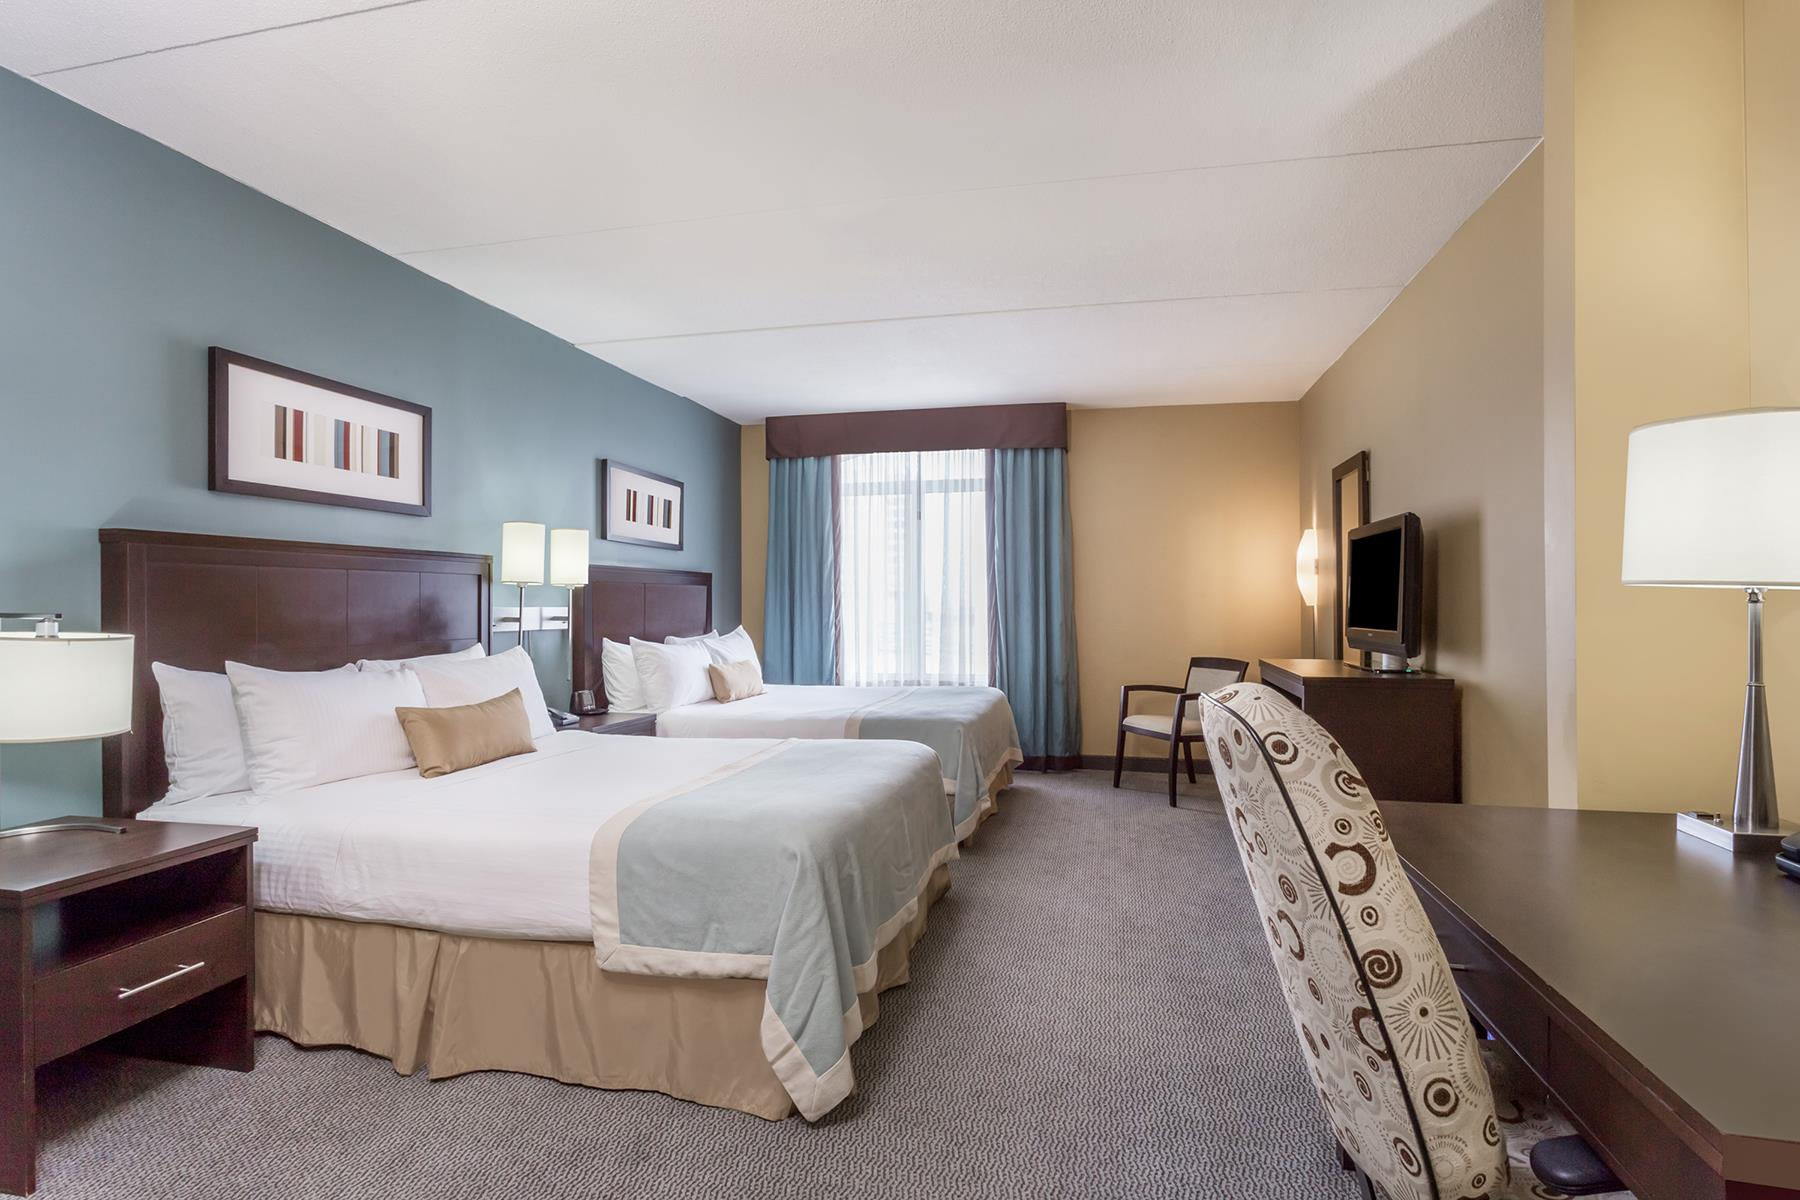 A spacious double queen bedroom suite in the Wingate by Wyndham hotel in Regina Saskatchewan